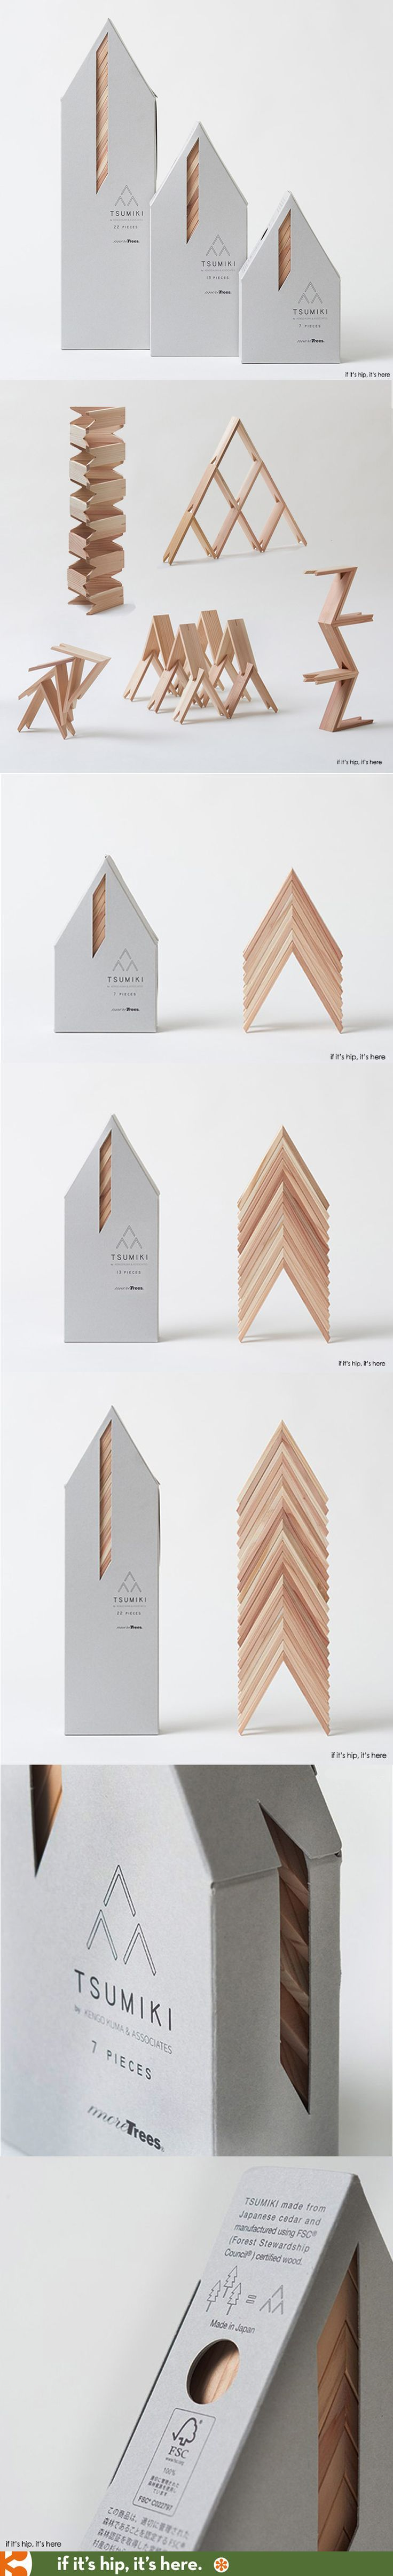 Japanese architect Kengo Kuma has collaborated with forest conservation organization More Trees to produce a set of beautifully packaged and unusually designed building blocks for children.